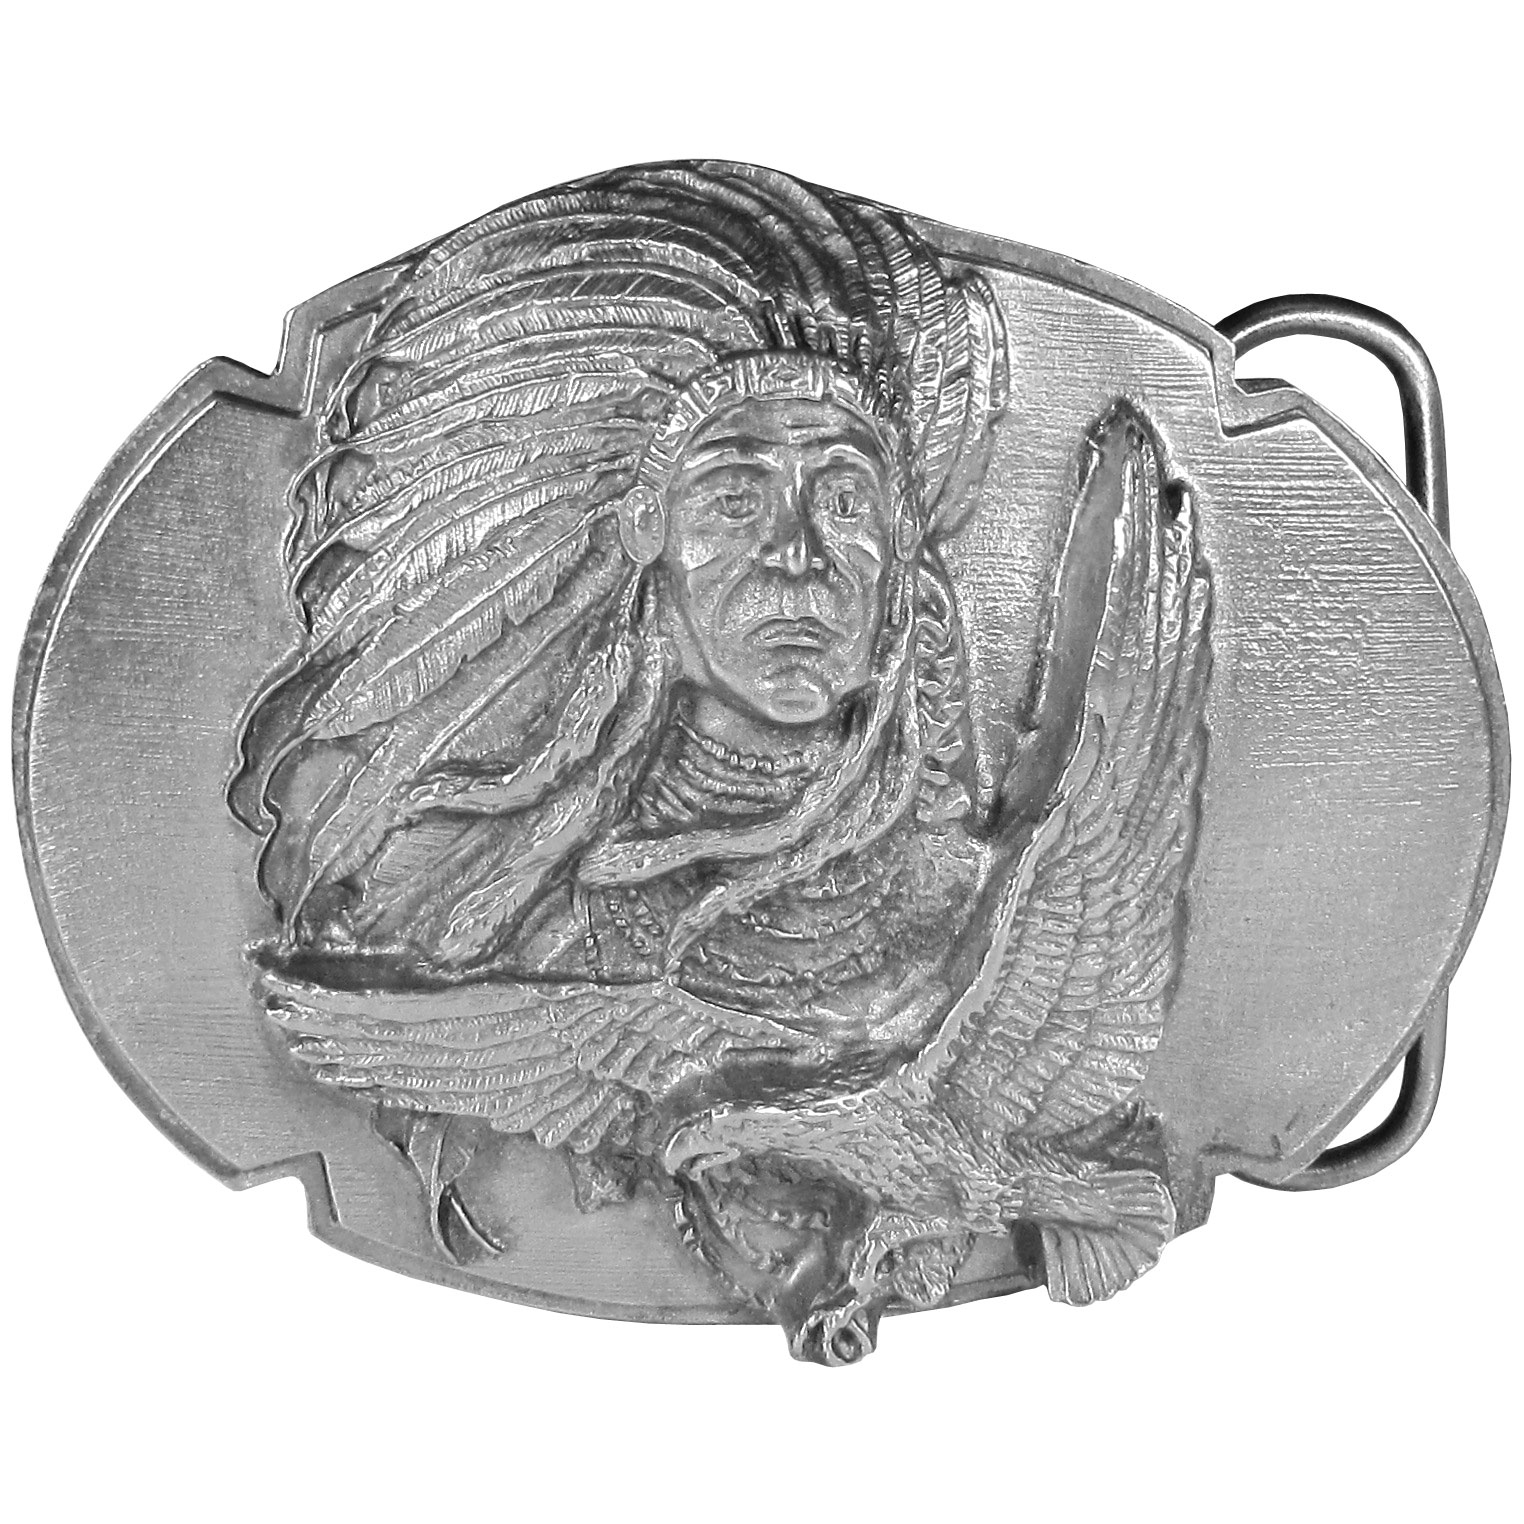 "Indian Chief Antiqued Belt Buckle - This belt buckle features the image of Chief Joseph in full headress with an eagle below. On the back are the words, All men were made by the same Great Spirit. They are all brothers. Chief Joseph 1878. This exquisitely carved buckle is made of fully cast metal with a standard bale that fits up to 2"" belts."